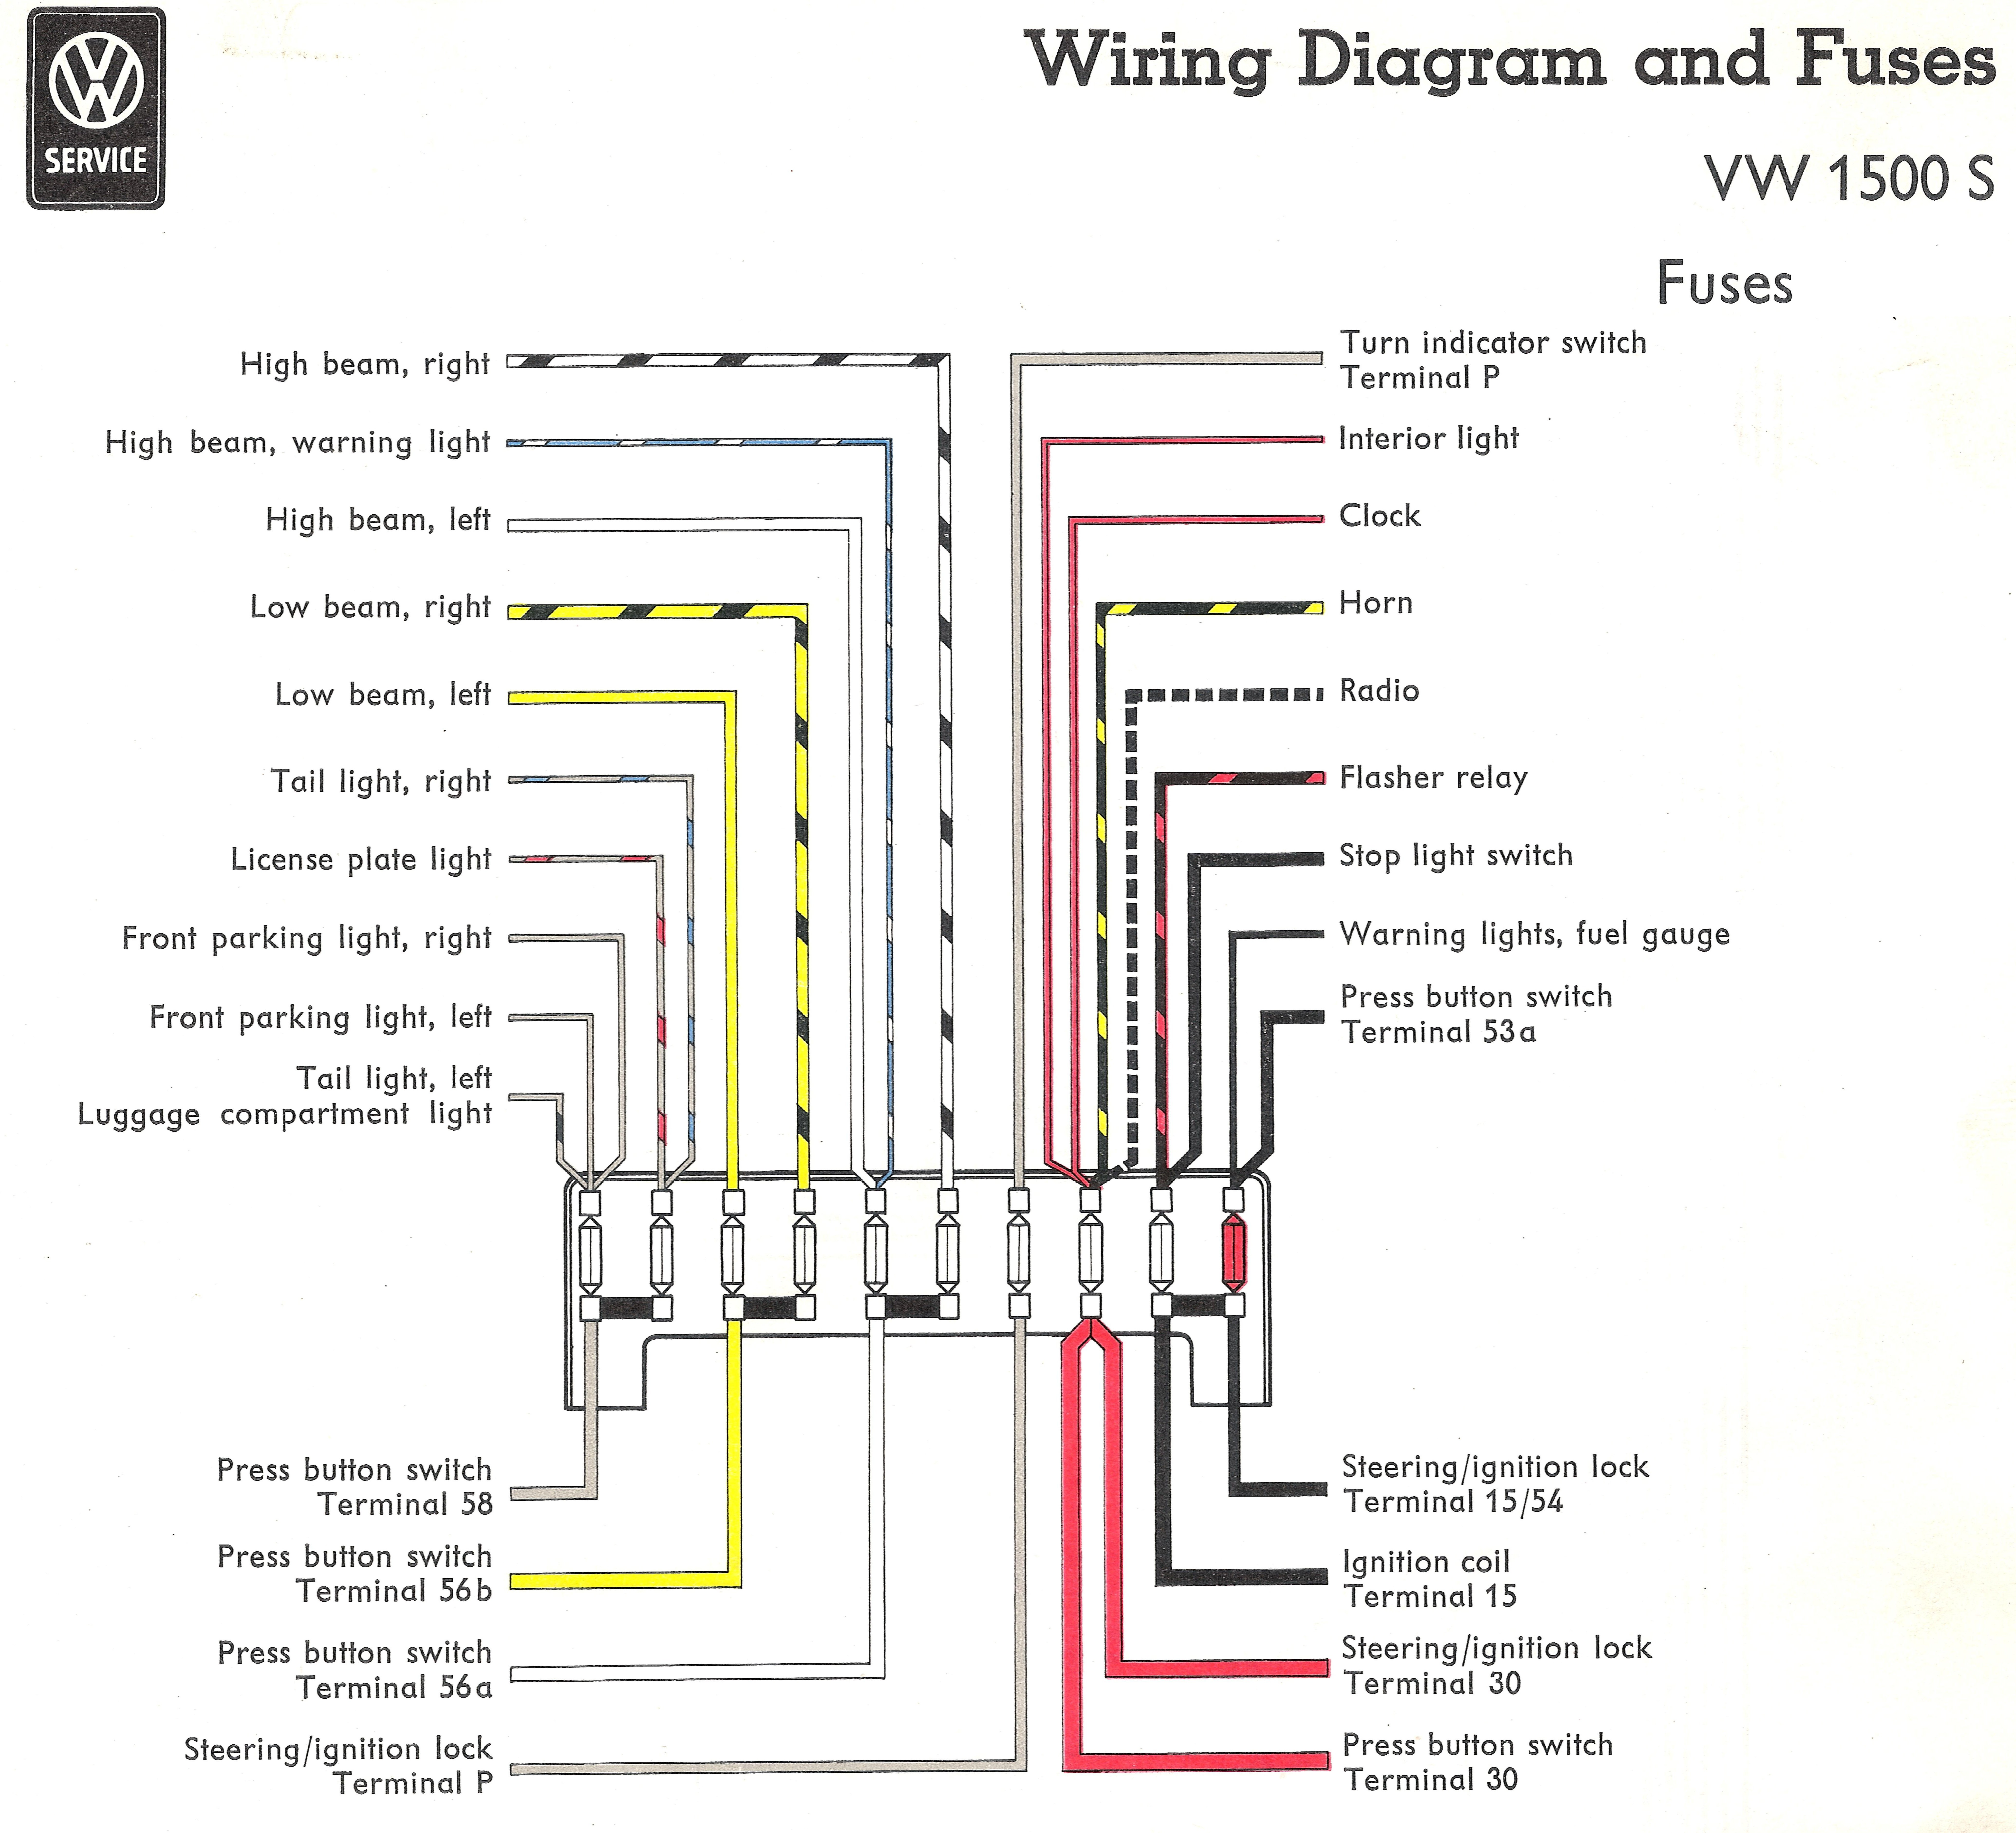 type3_1500s fuse 1200dpi thesamba com type 3 wiring diagrams vw fuse box diagram at crackthecode.co